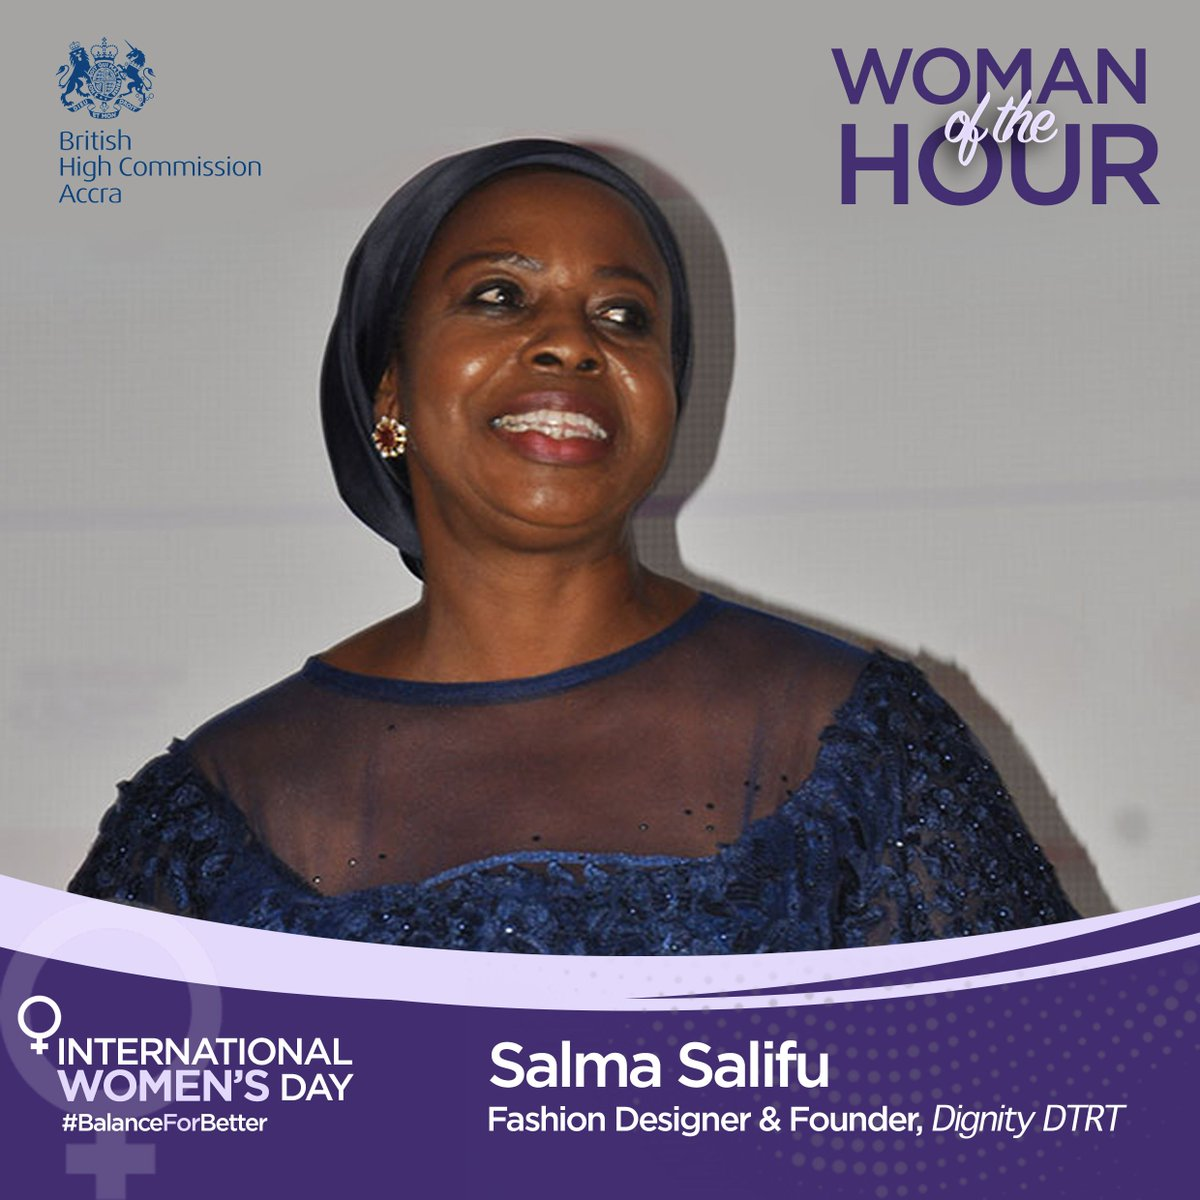 Uk In Ghana On Twitter Womanofthehour Salma Salifu Is A Ghanaian Businesswoman And Fashion Designer She Is Also The Managing Director Of Dignity Dtrt A Garment Factory In Ghana Which Employs